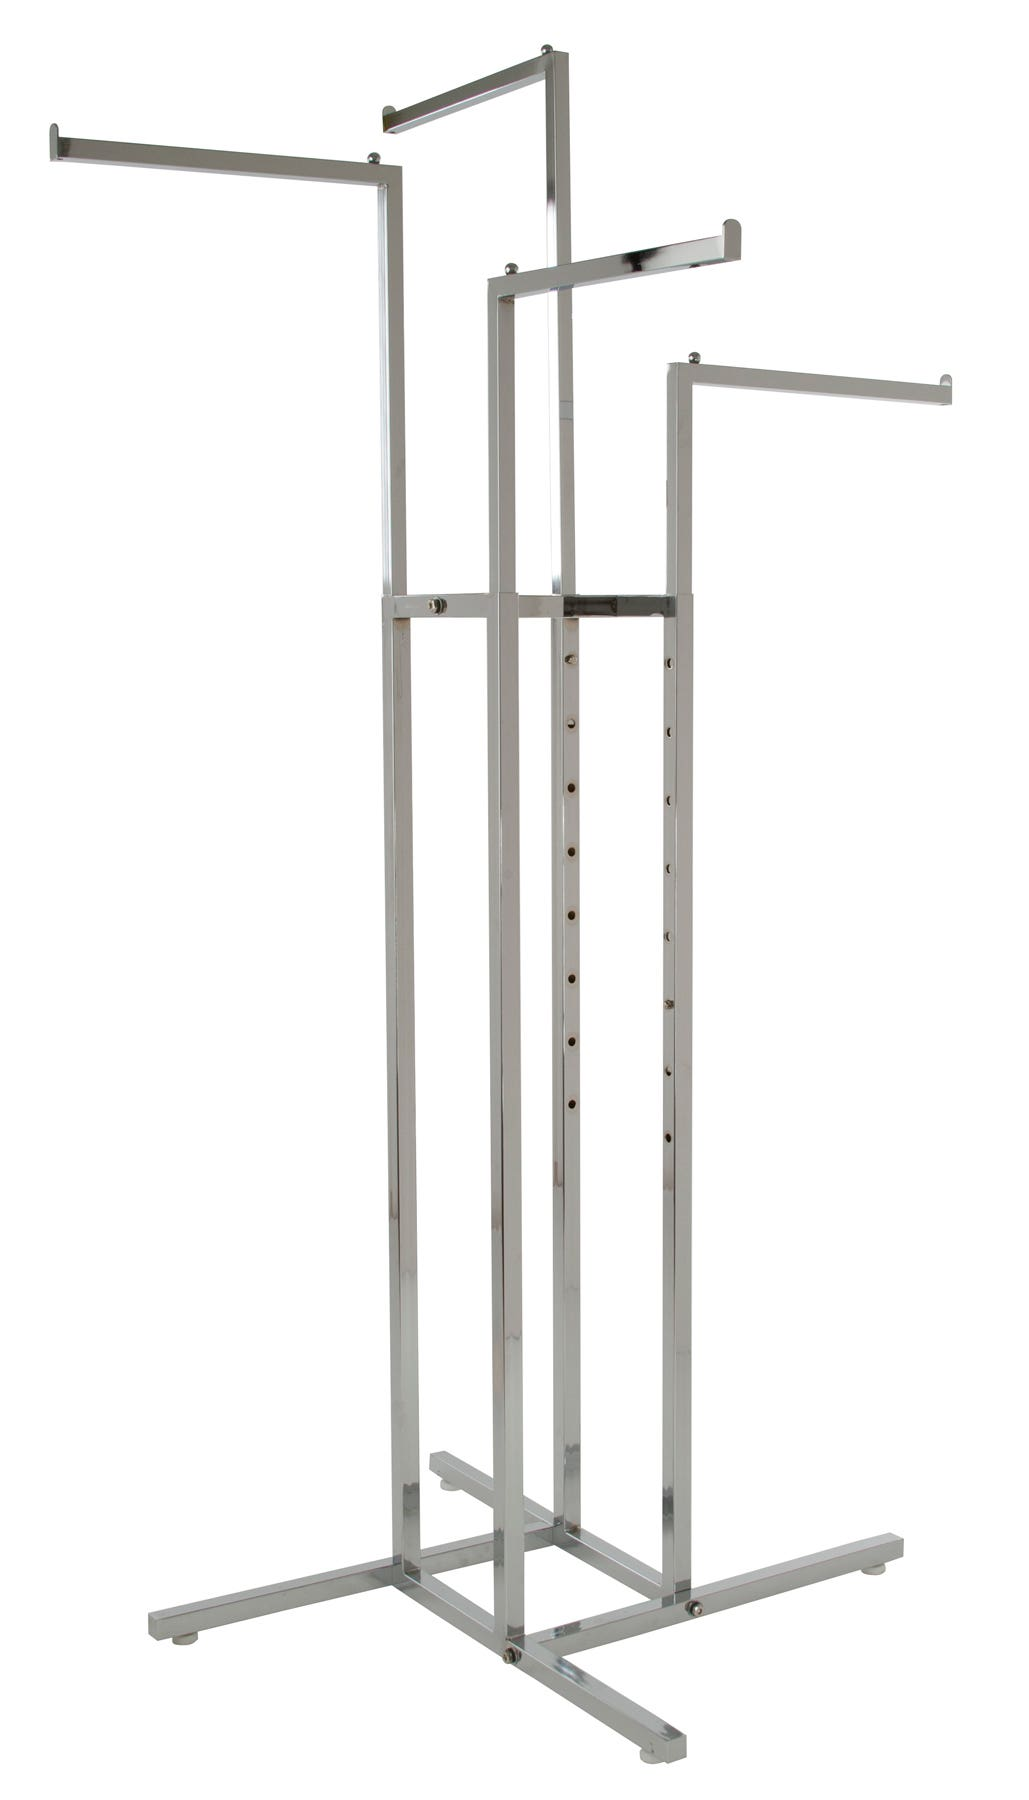 4-Way Retail Clothing Racks